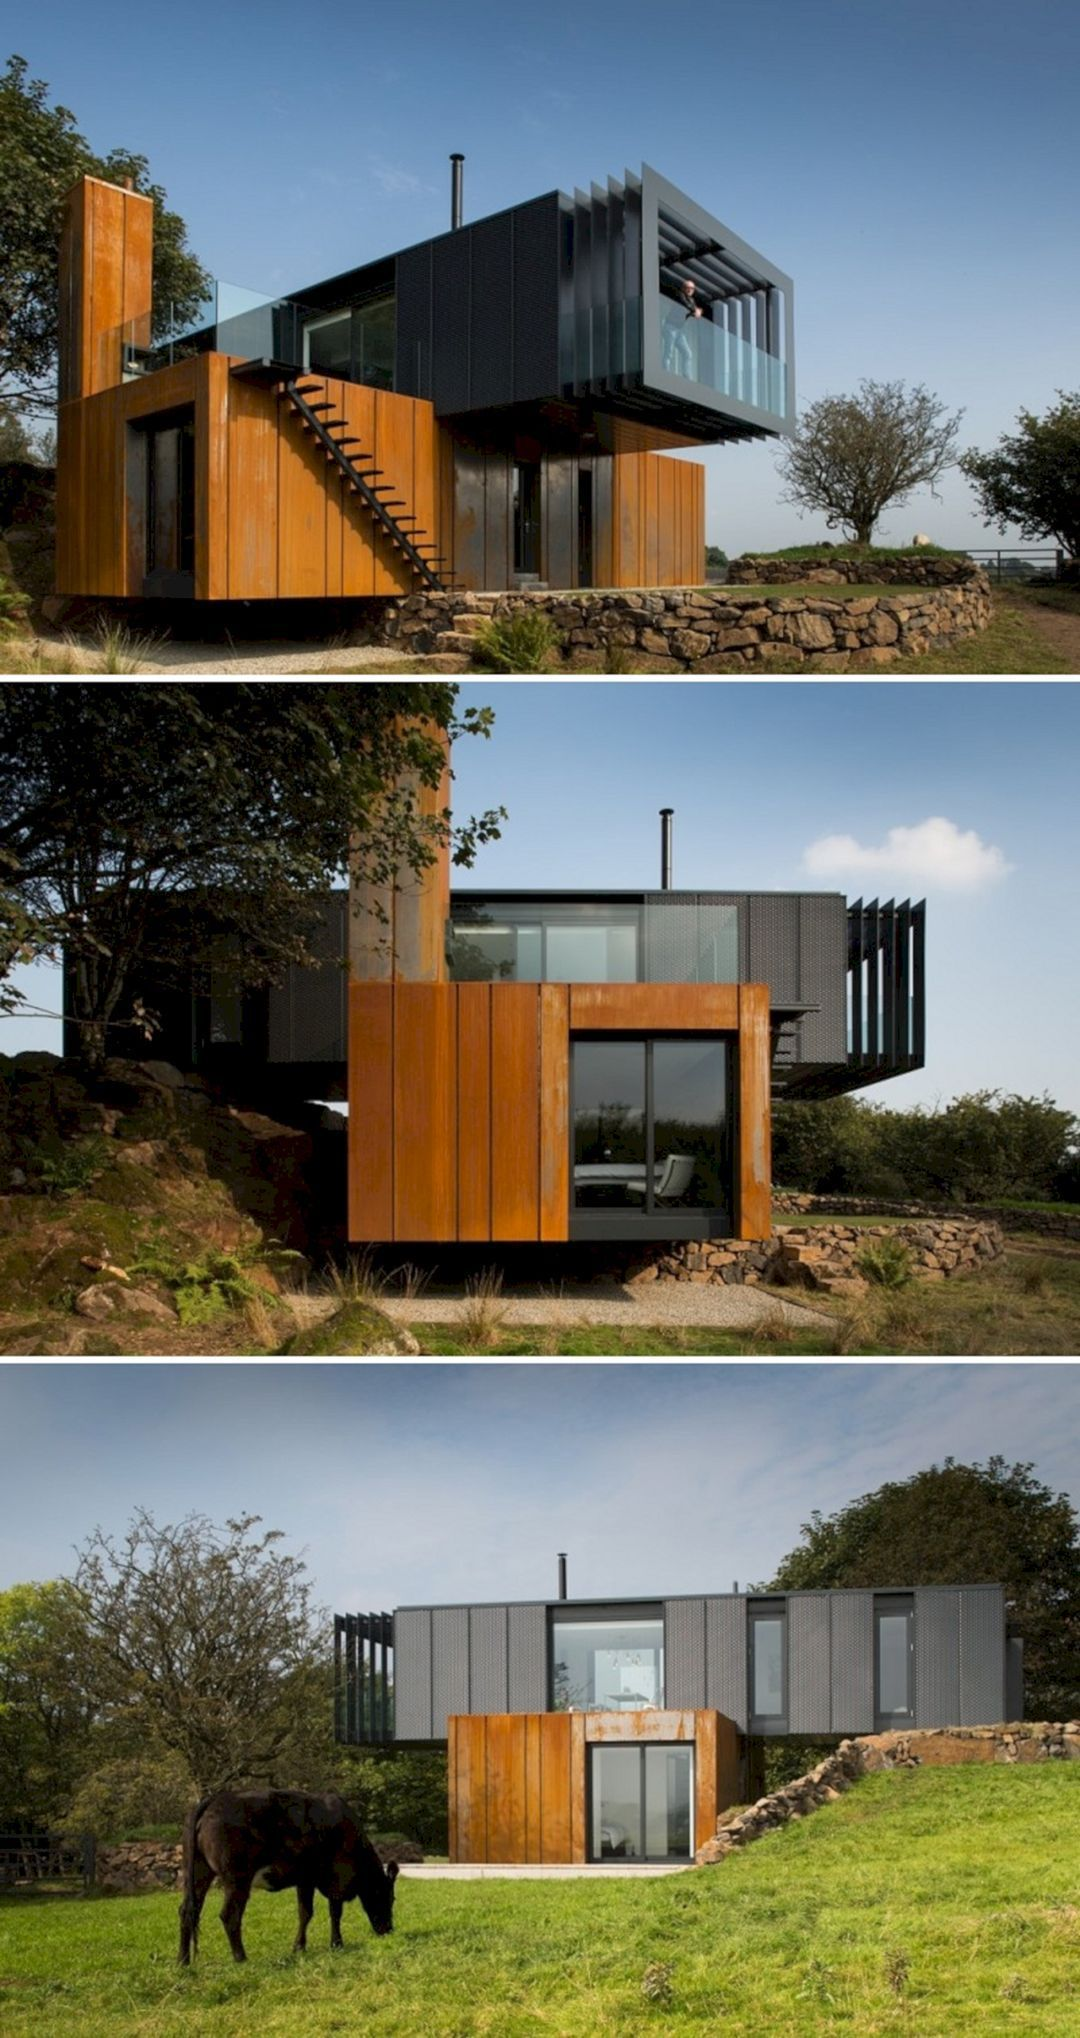 The Best Modern and Container Houses Design Ideas